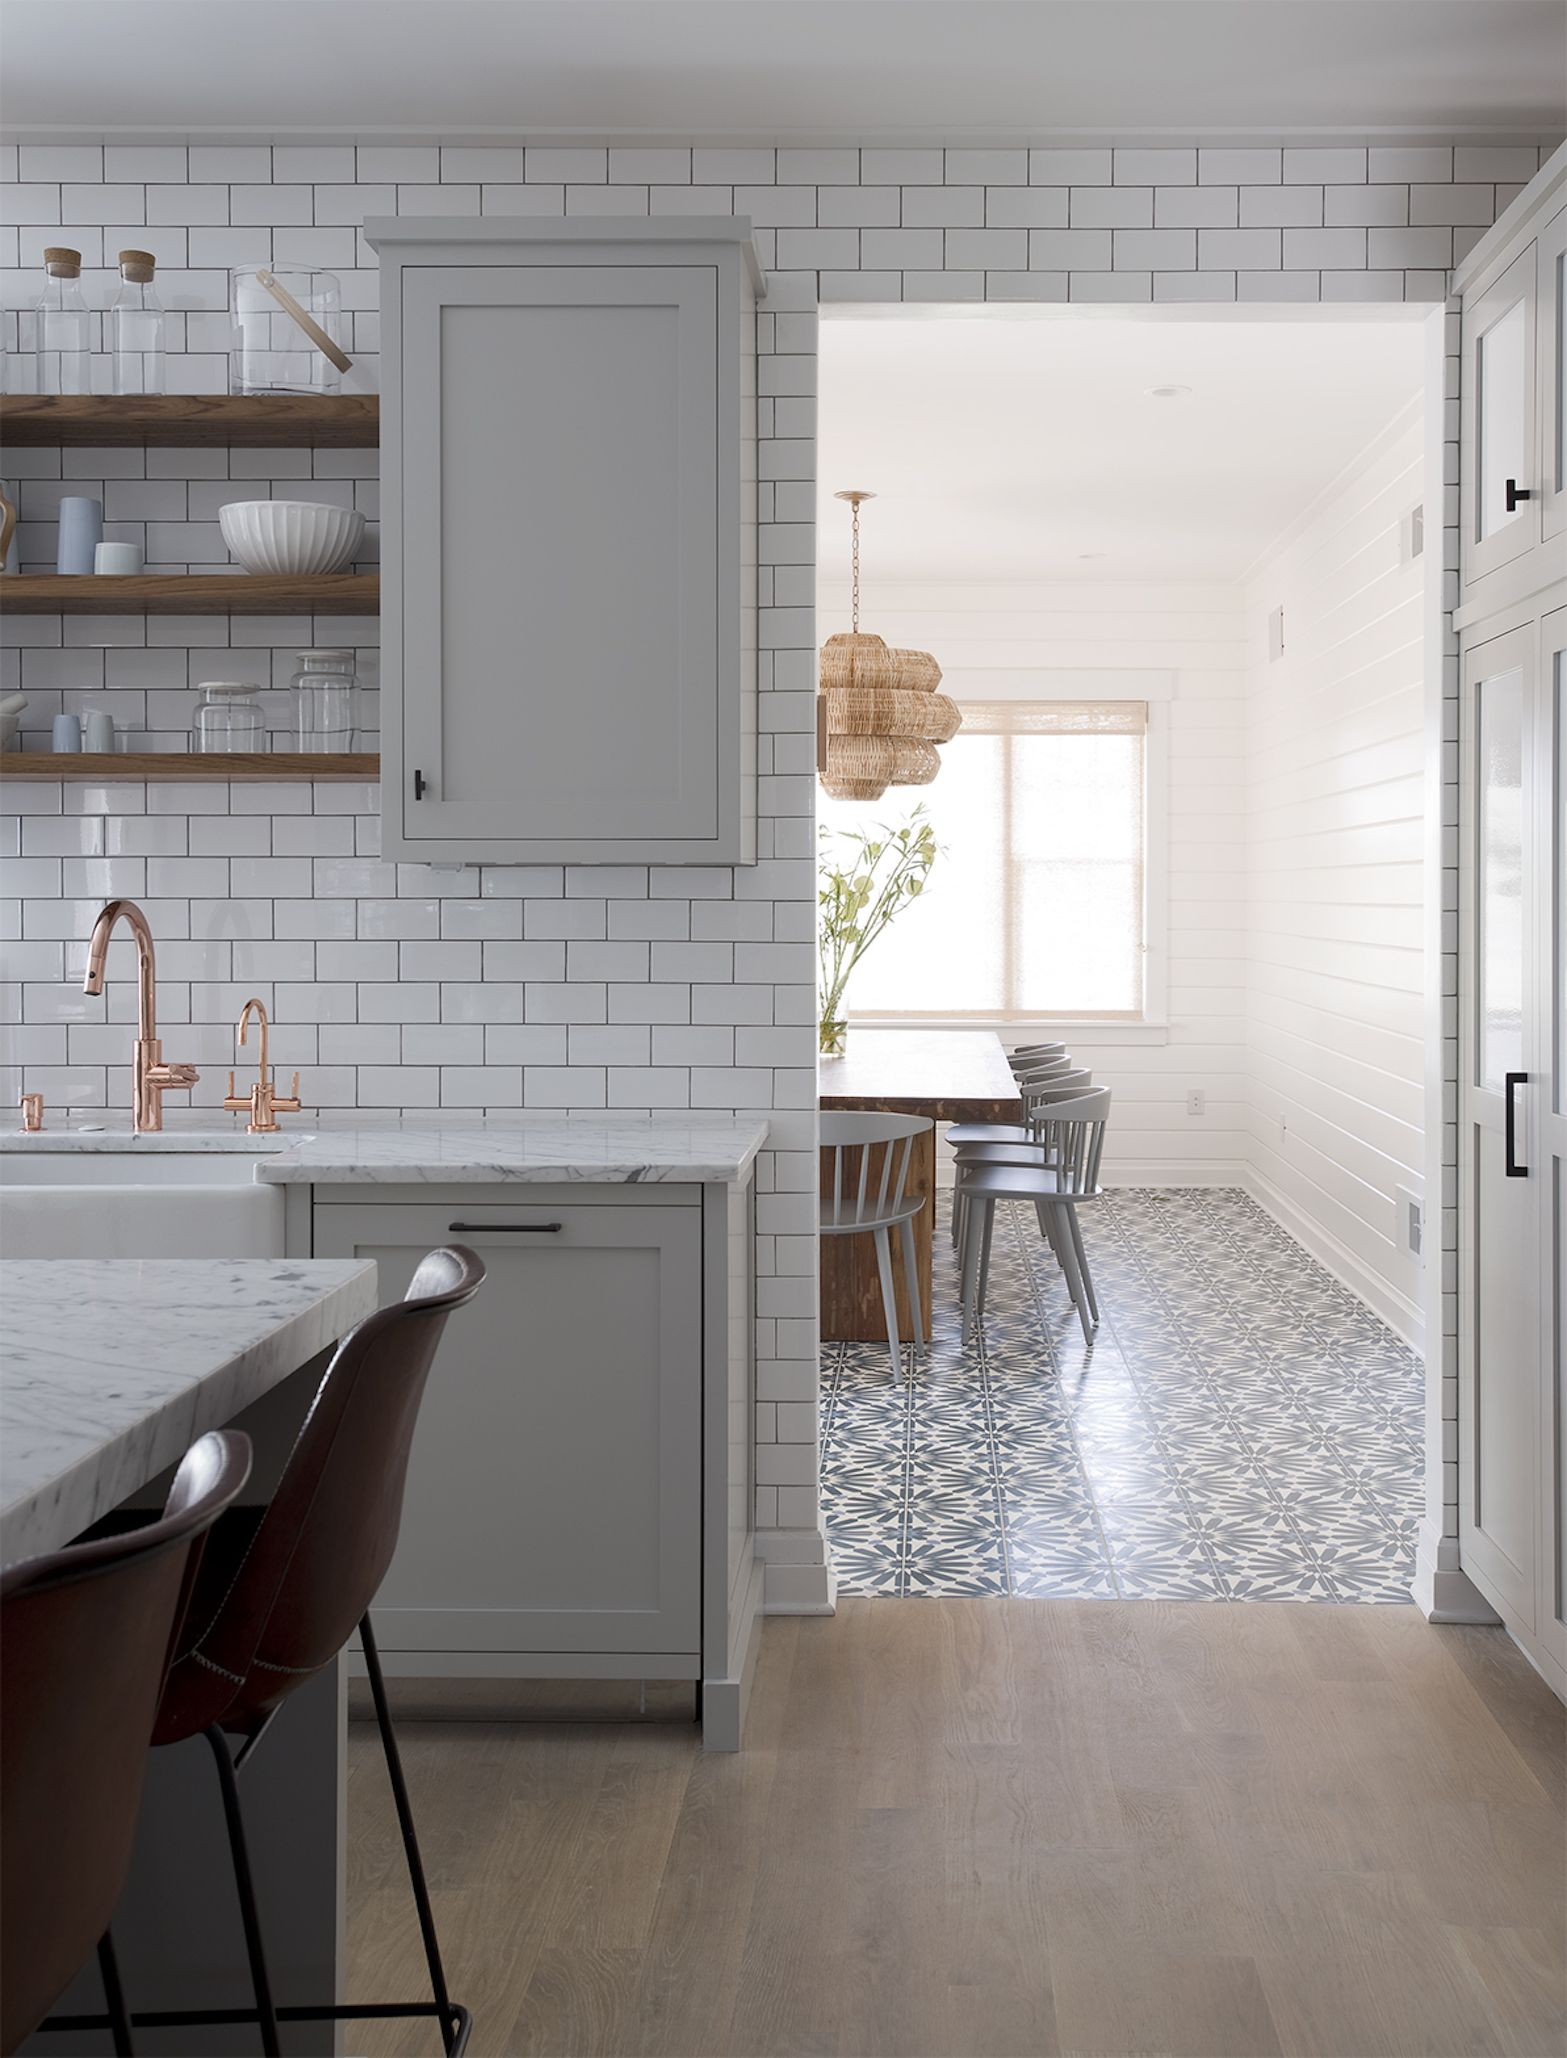 White Subway Tile Walls And Patterened Floors Threshold